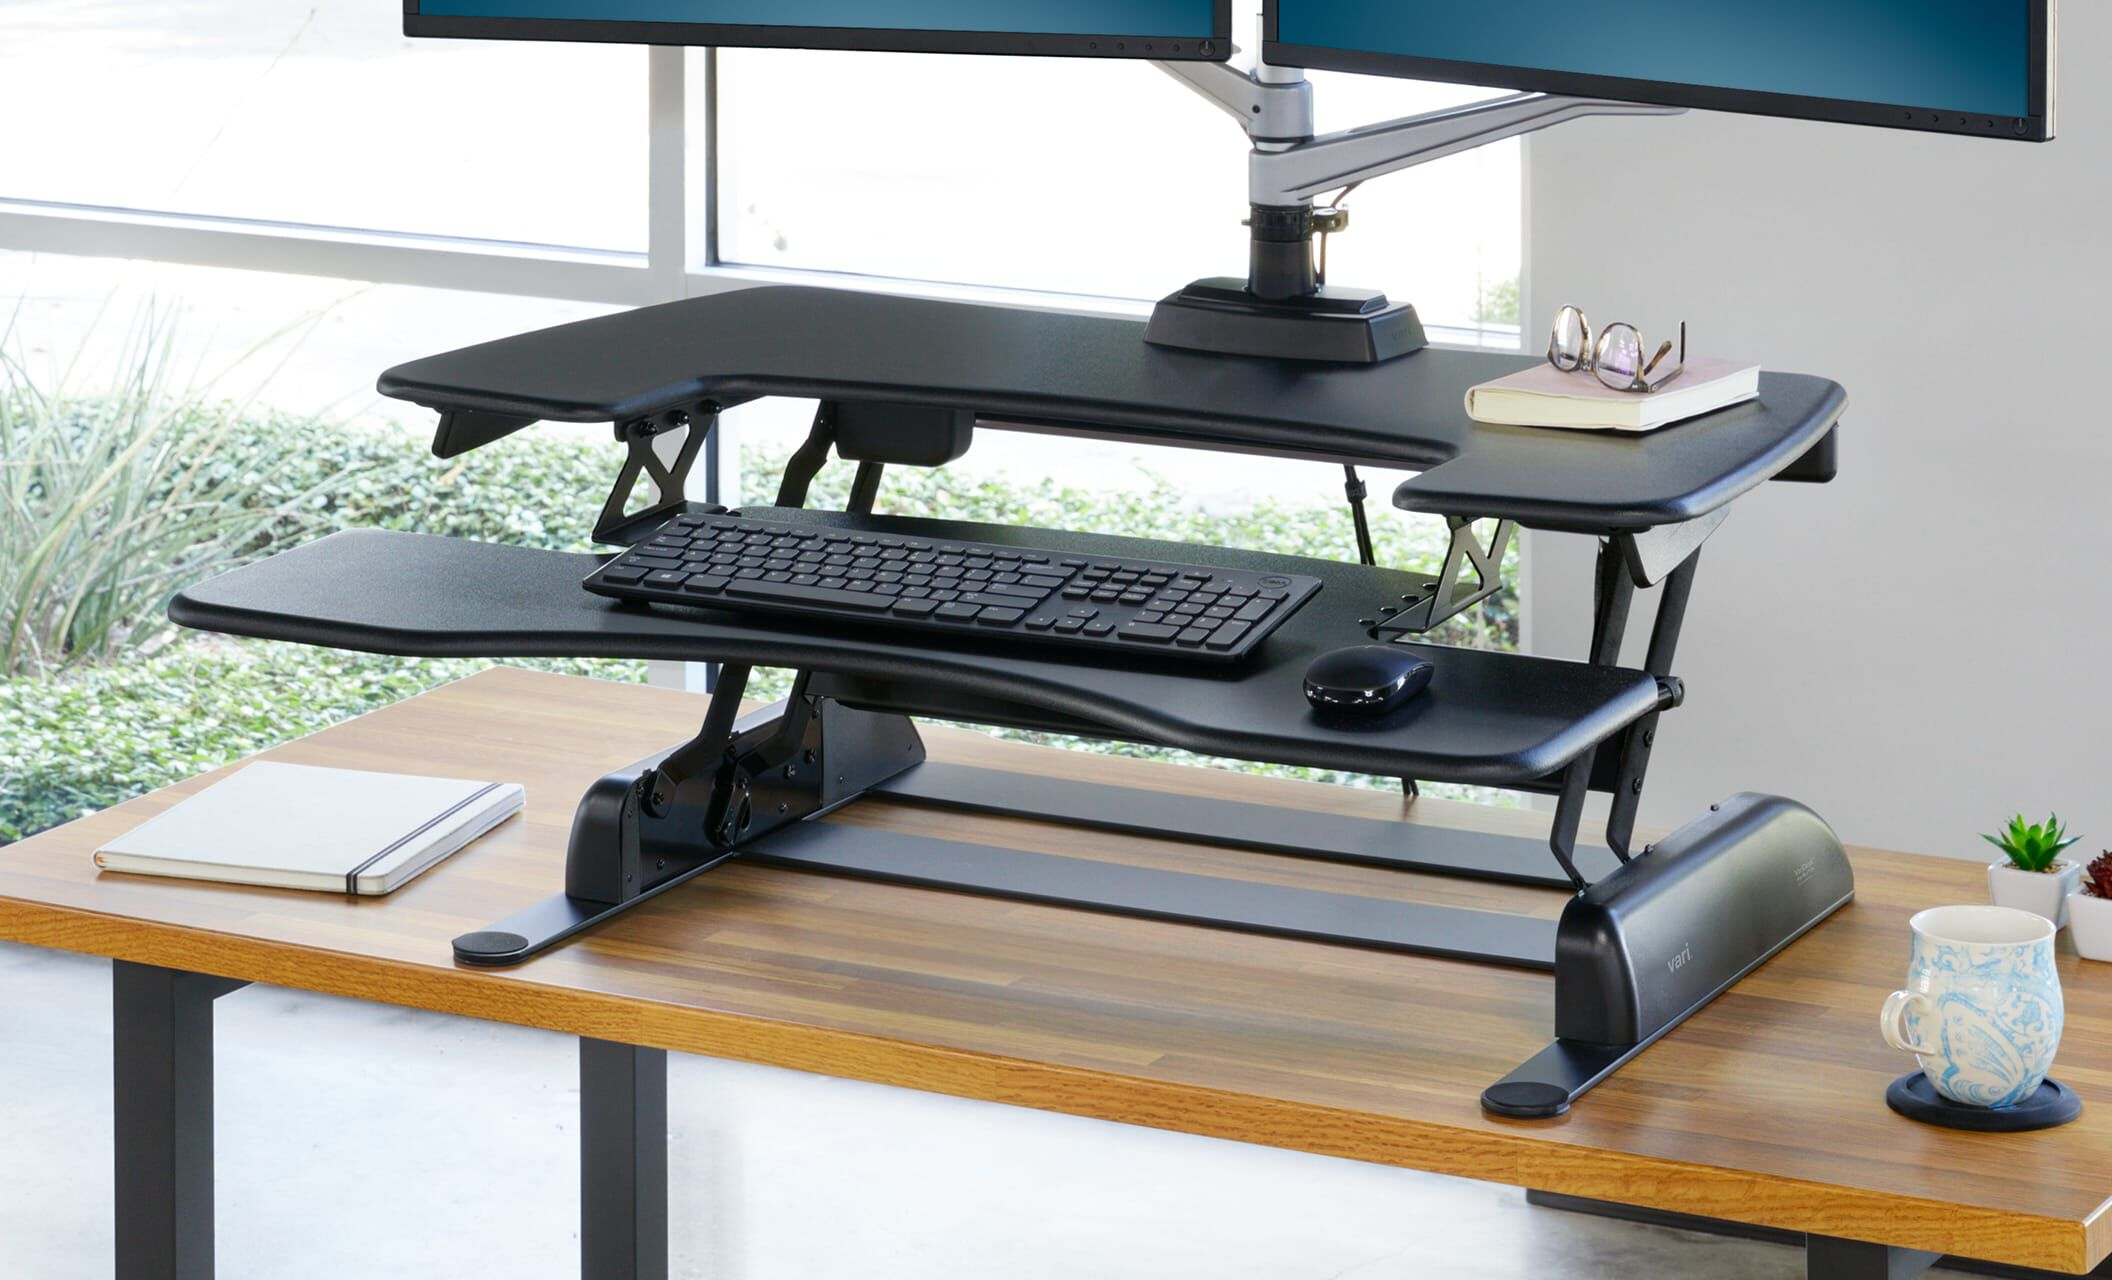 Desk riser has been lifted to a standing position to feature the weighted base and keyboard tray